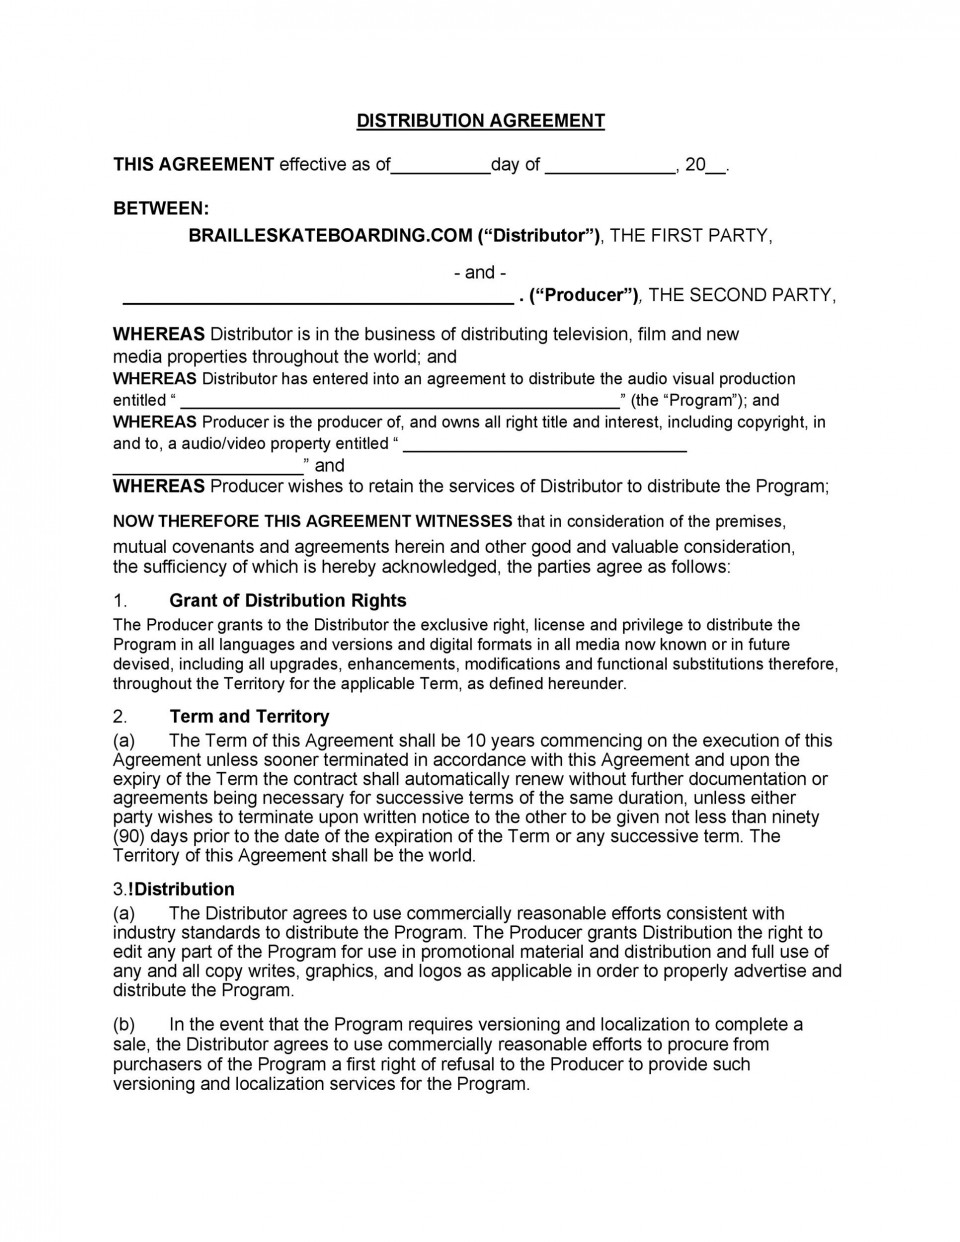 005 Magnificent Distribution Agreement Template Word High Definition  Distributor Exclusive Contract960